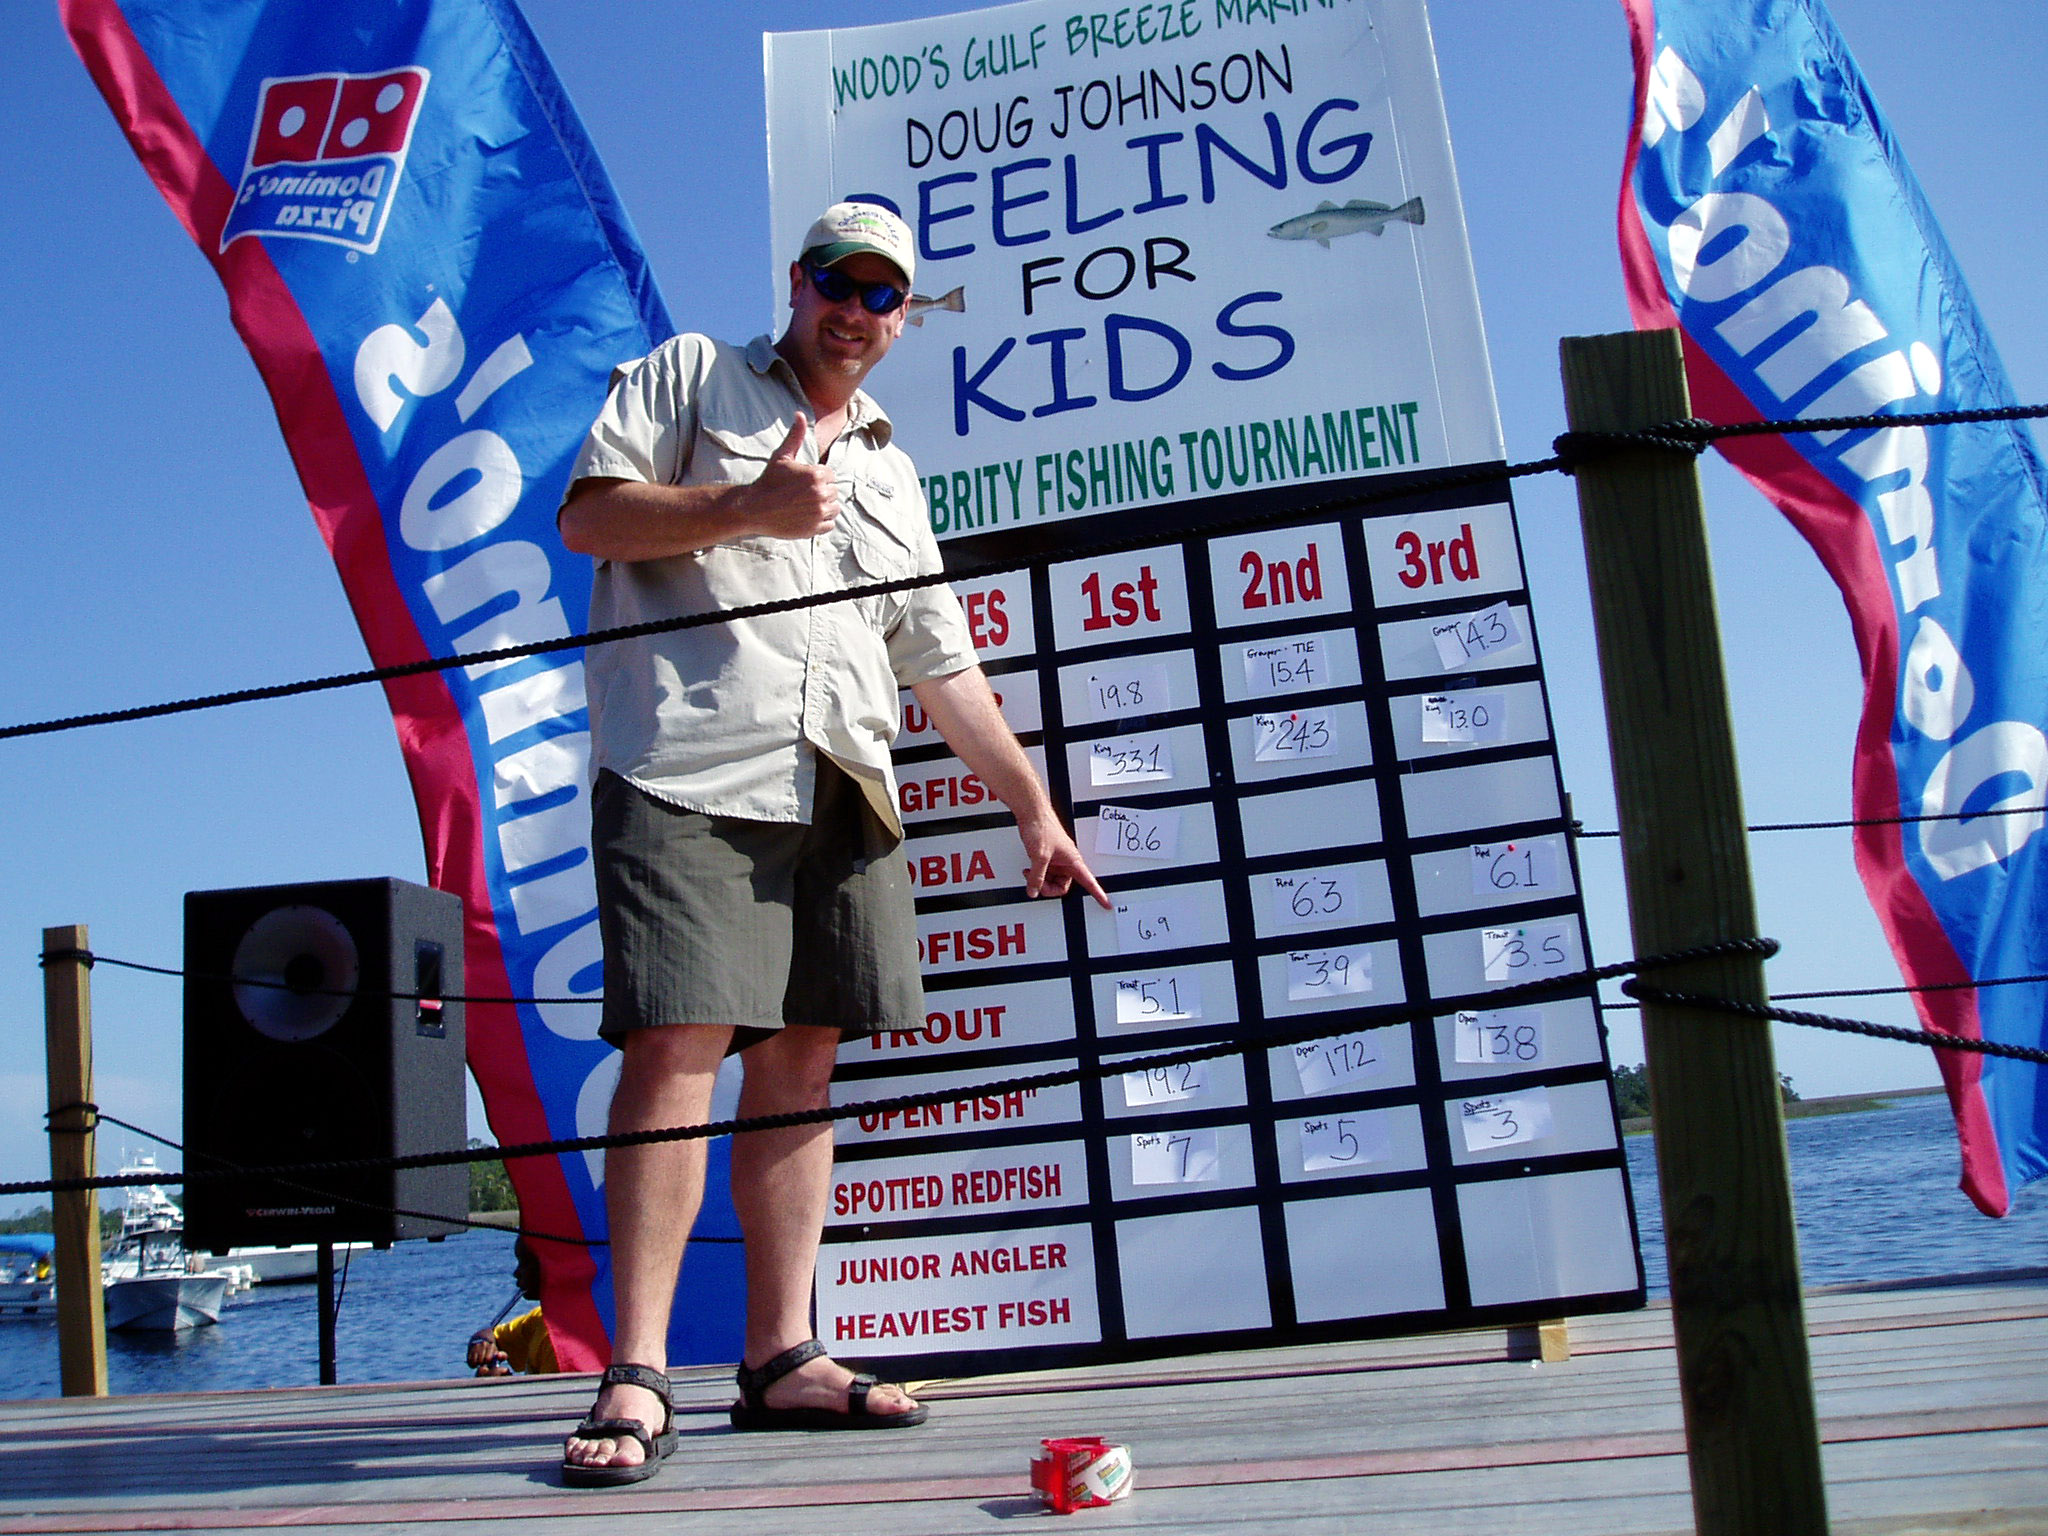 Reeling for kids tournament another fantastic weekend for Youth fishing tournaments near me